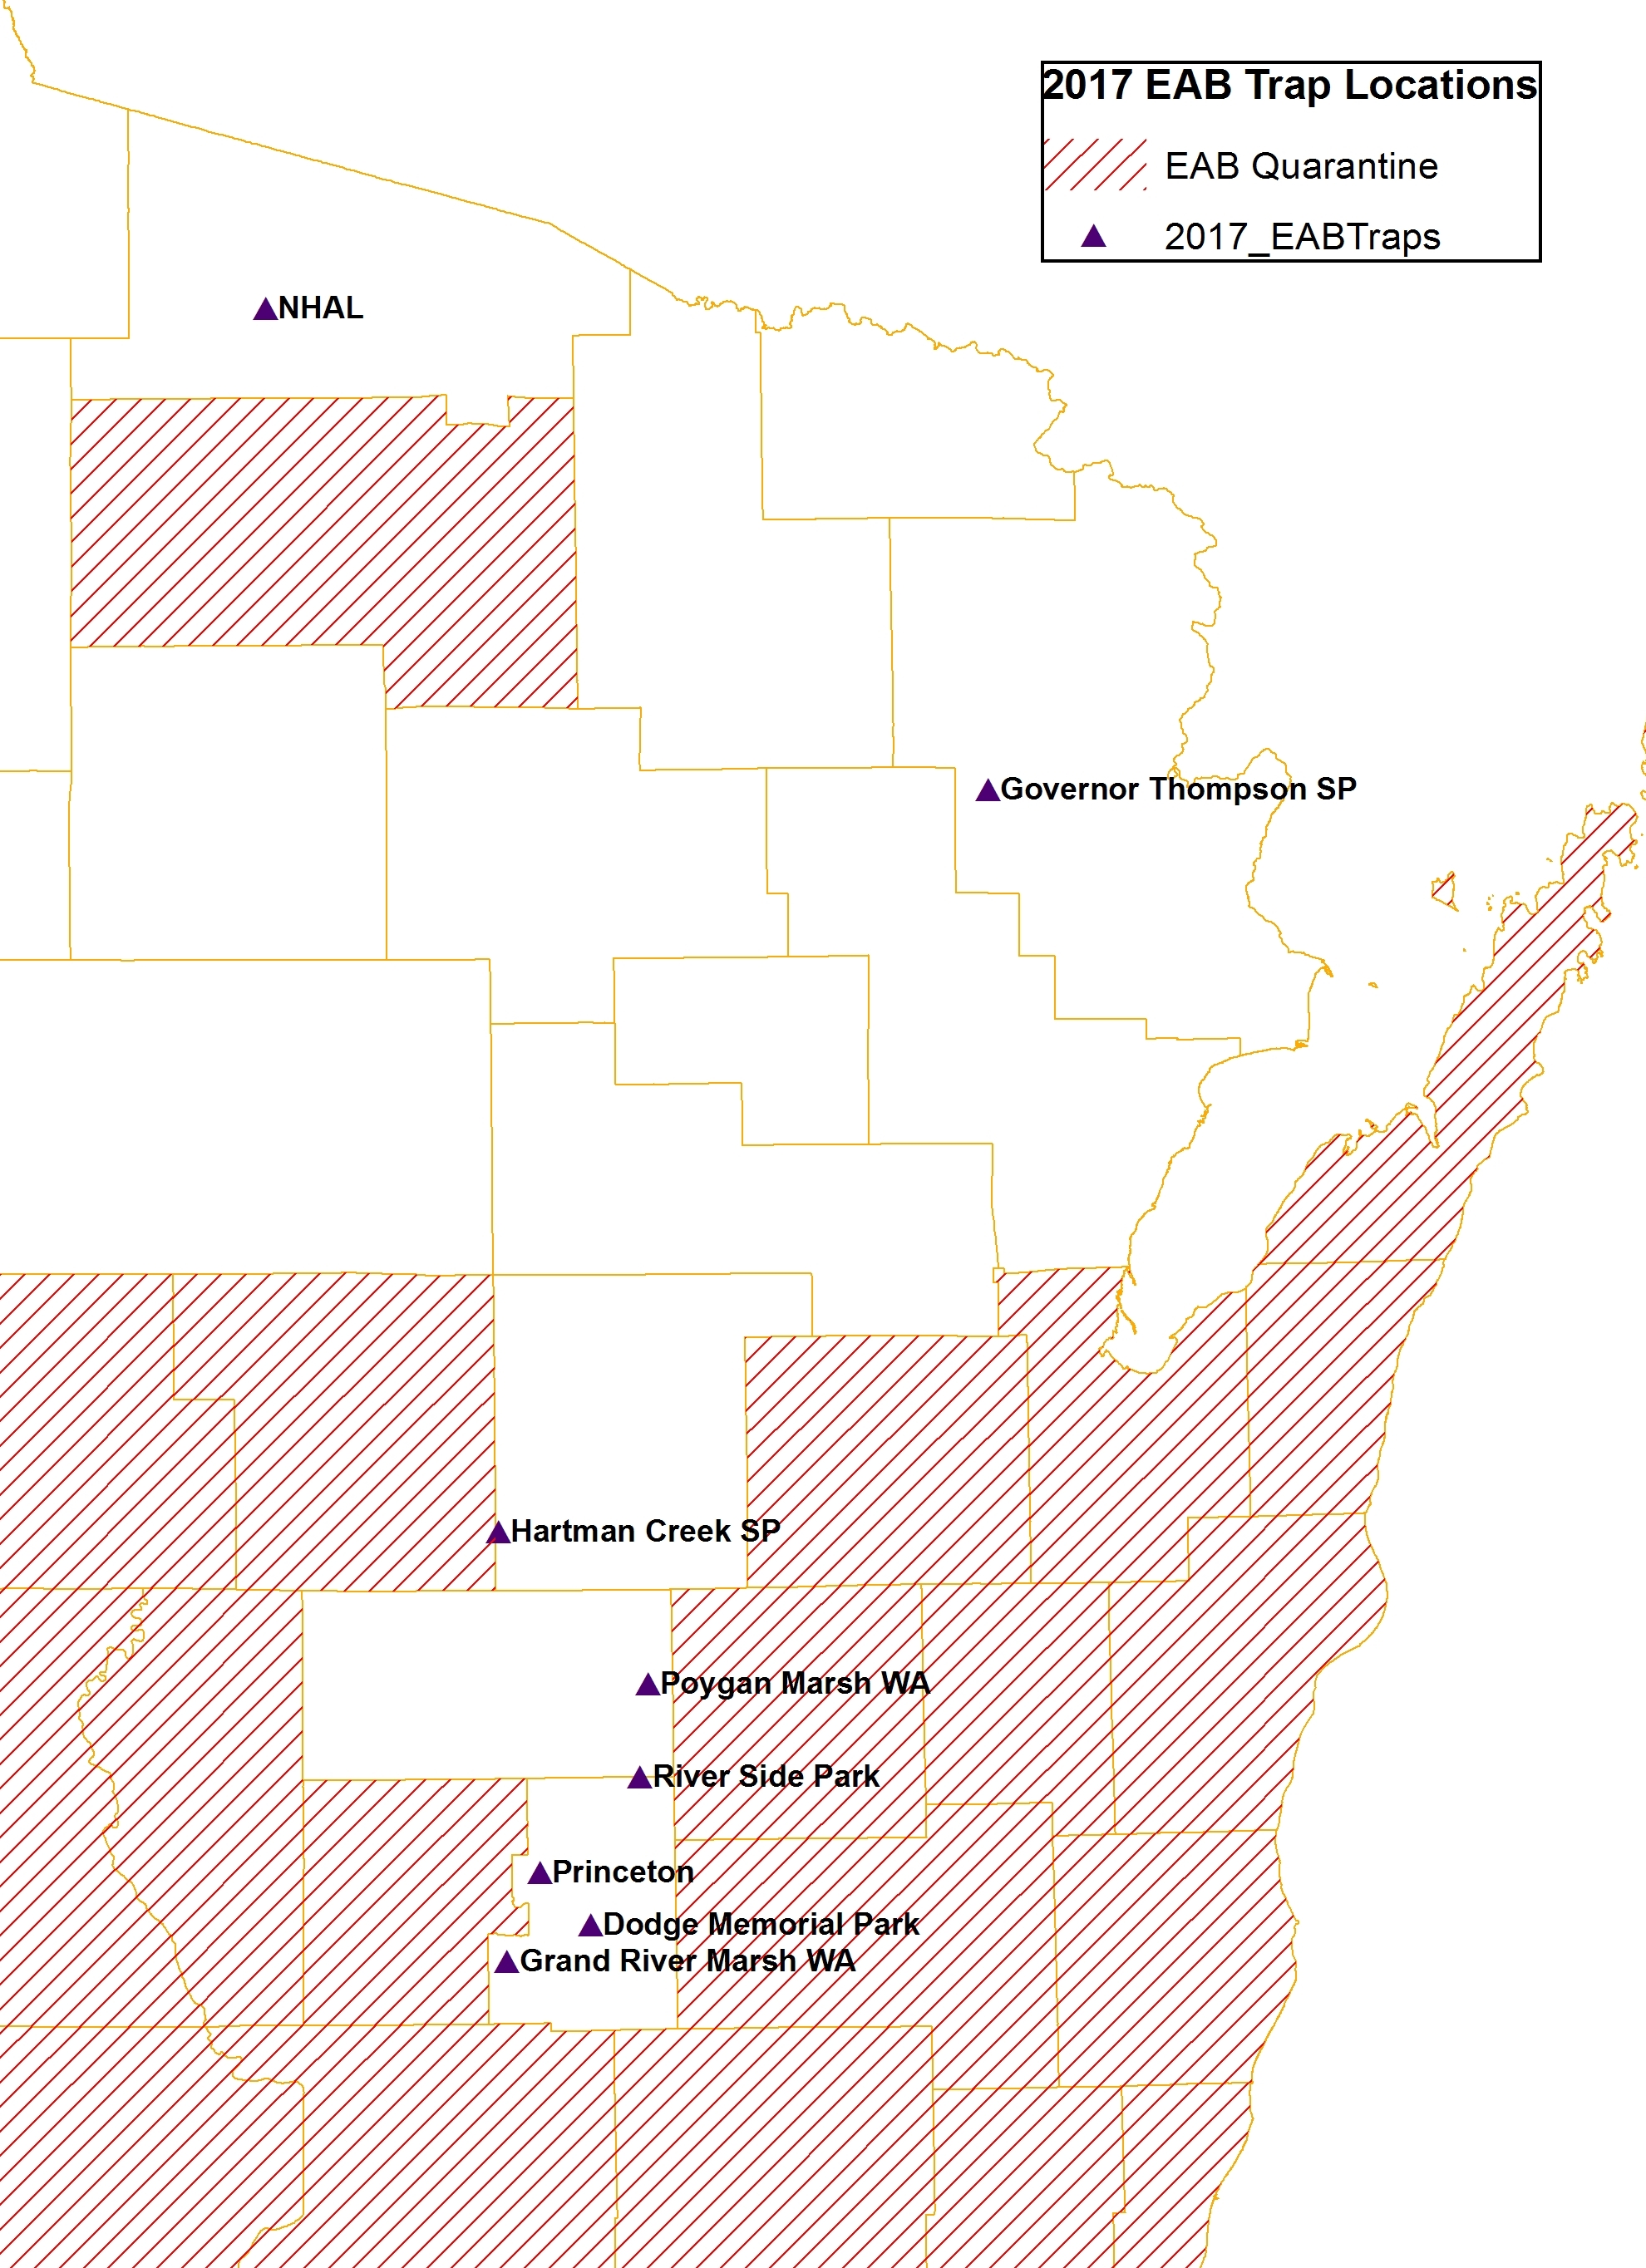 Emerald ash borer traps will be placed at 8 locations in northwest Wisconsin in 2017: Northern Highlands American Legion State Forest, Governor Thompson State Park, Hartman Creek State Park, Poygan Marsh Wildlife Area, River Side Park, Princeton, Dodge Memorial Park, and Grand River Marsh Wildlife Area.